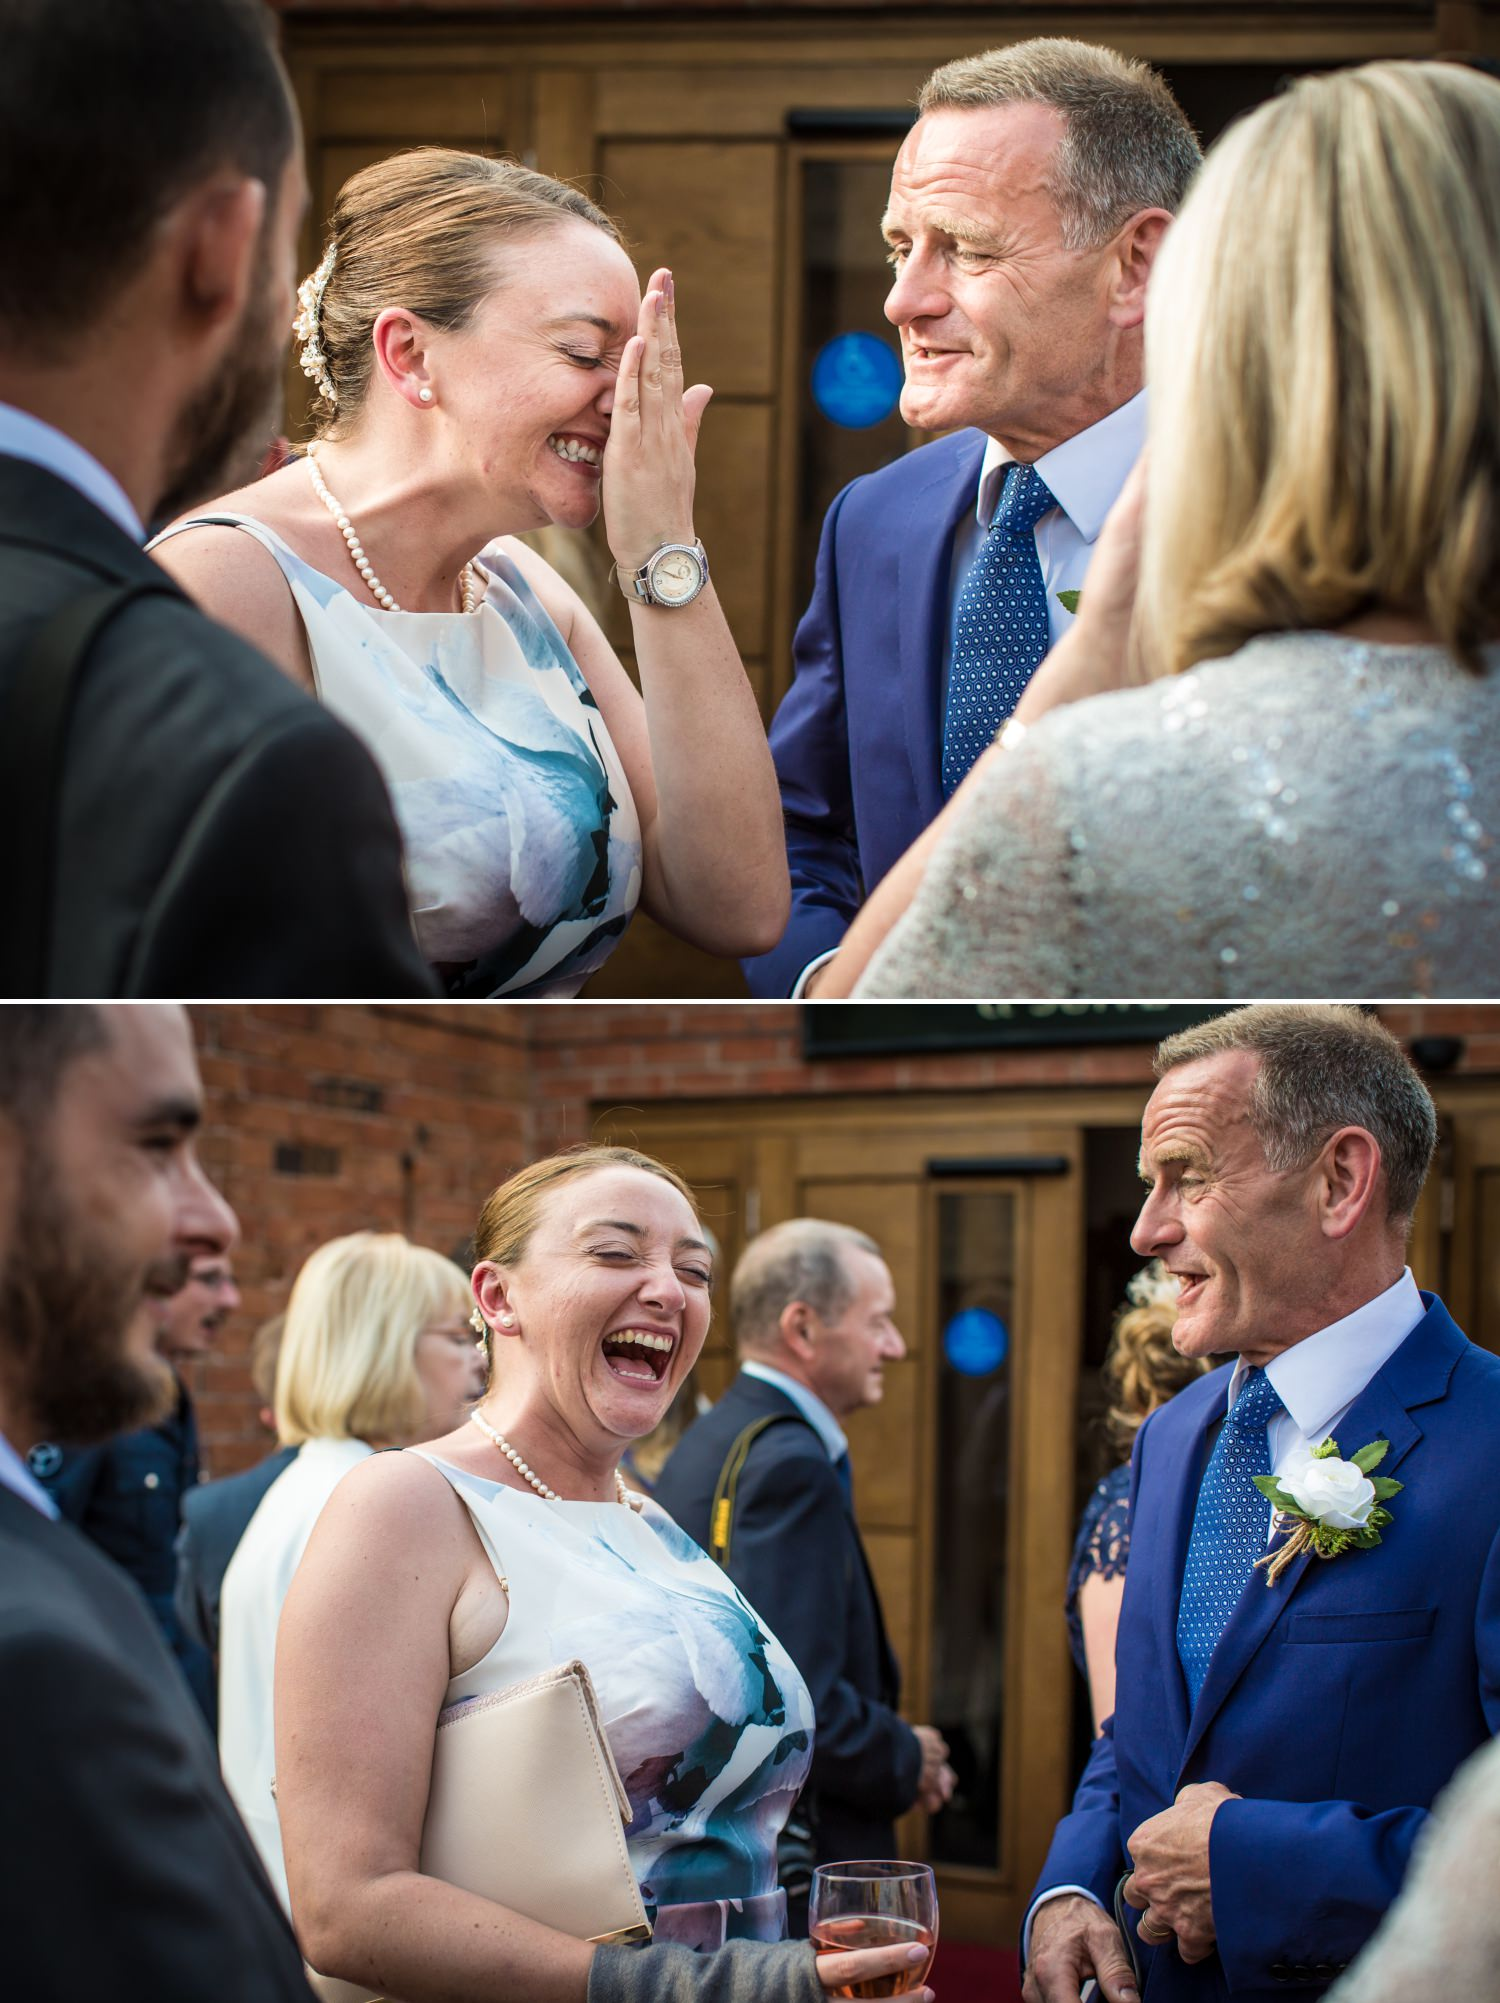 guests mingling Wedding Photograph at Carden Park